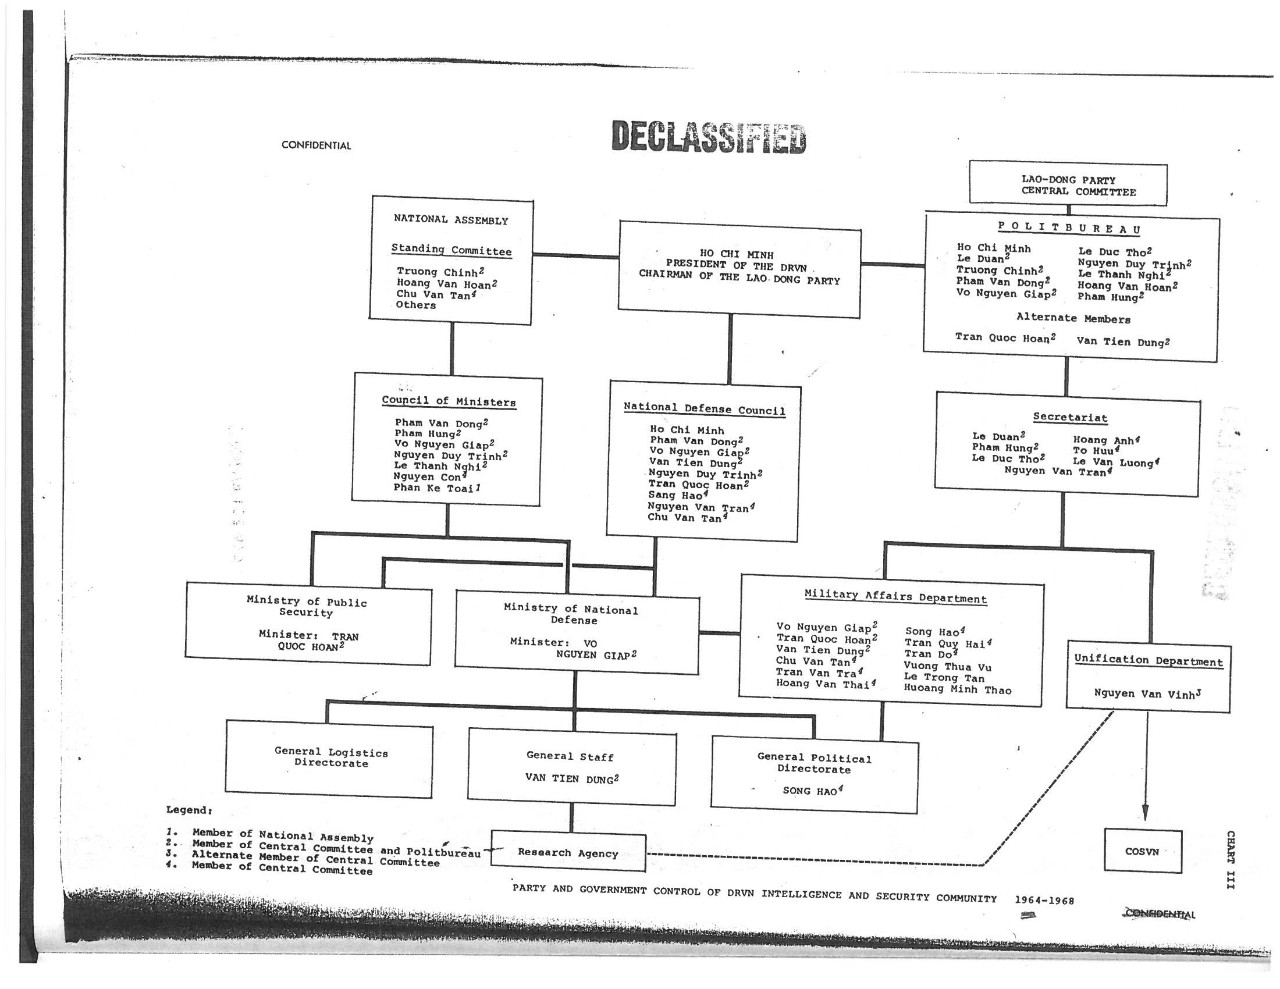 The Drvn Strategic Intelligence Service 35mm Pentax Diagram Free Download Wiring Diagrams Pictures Party And Government Control Of Security Community 1964 1968